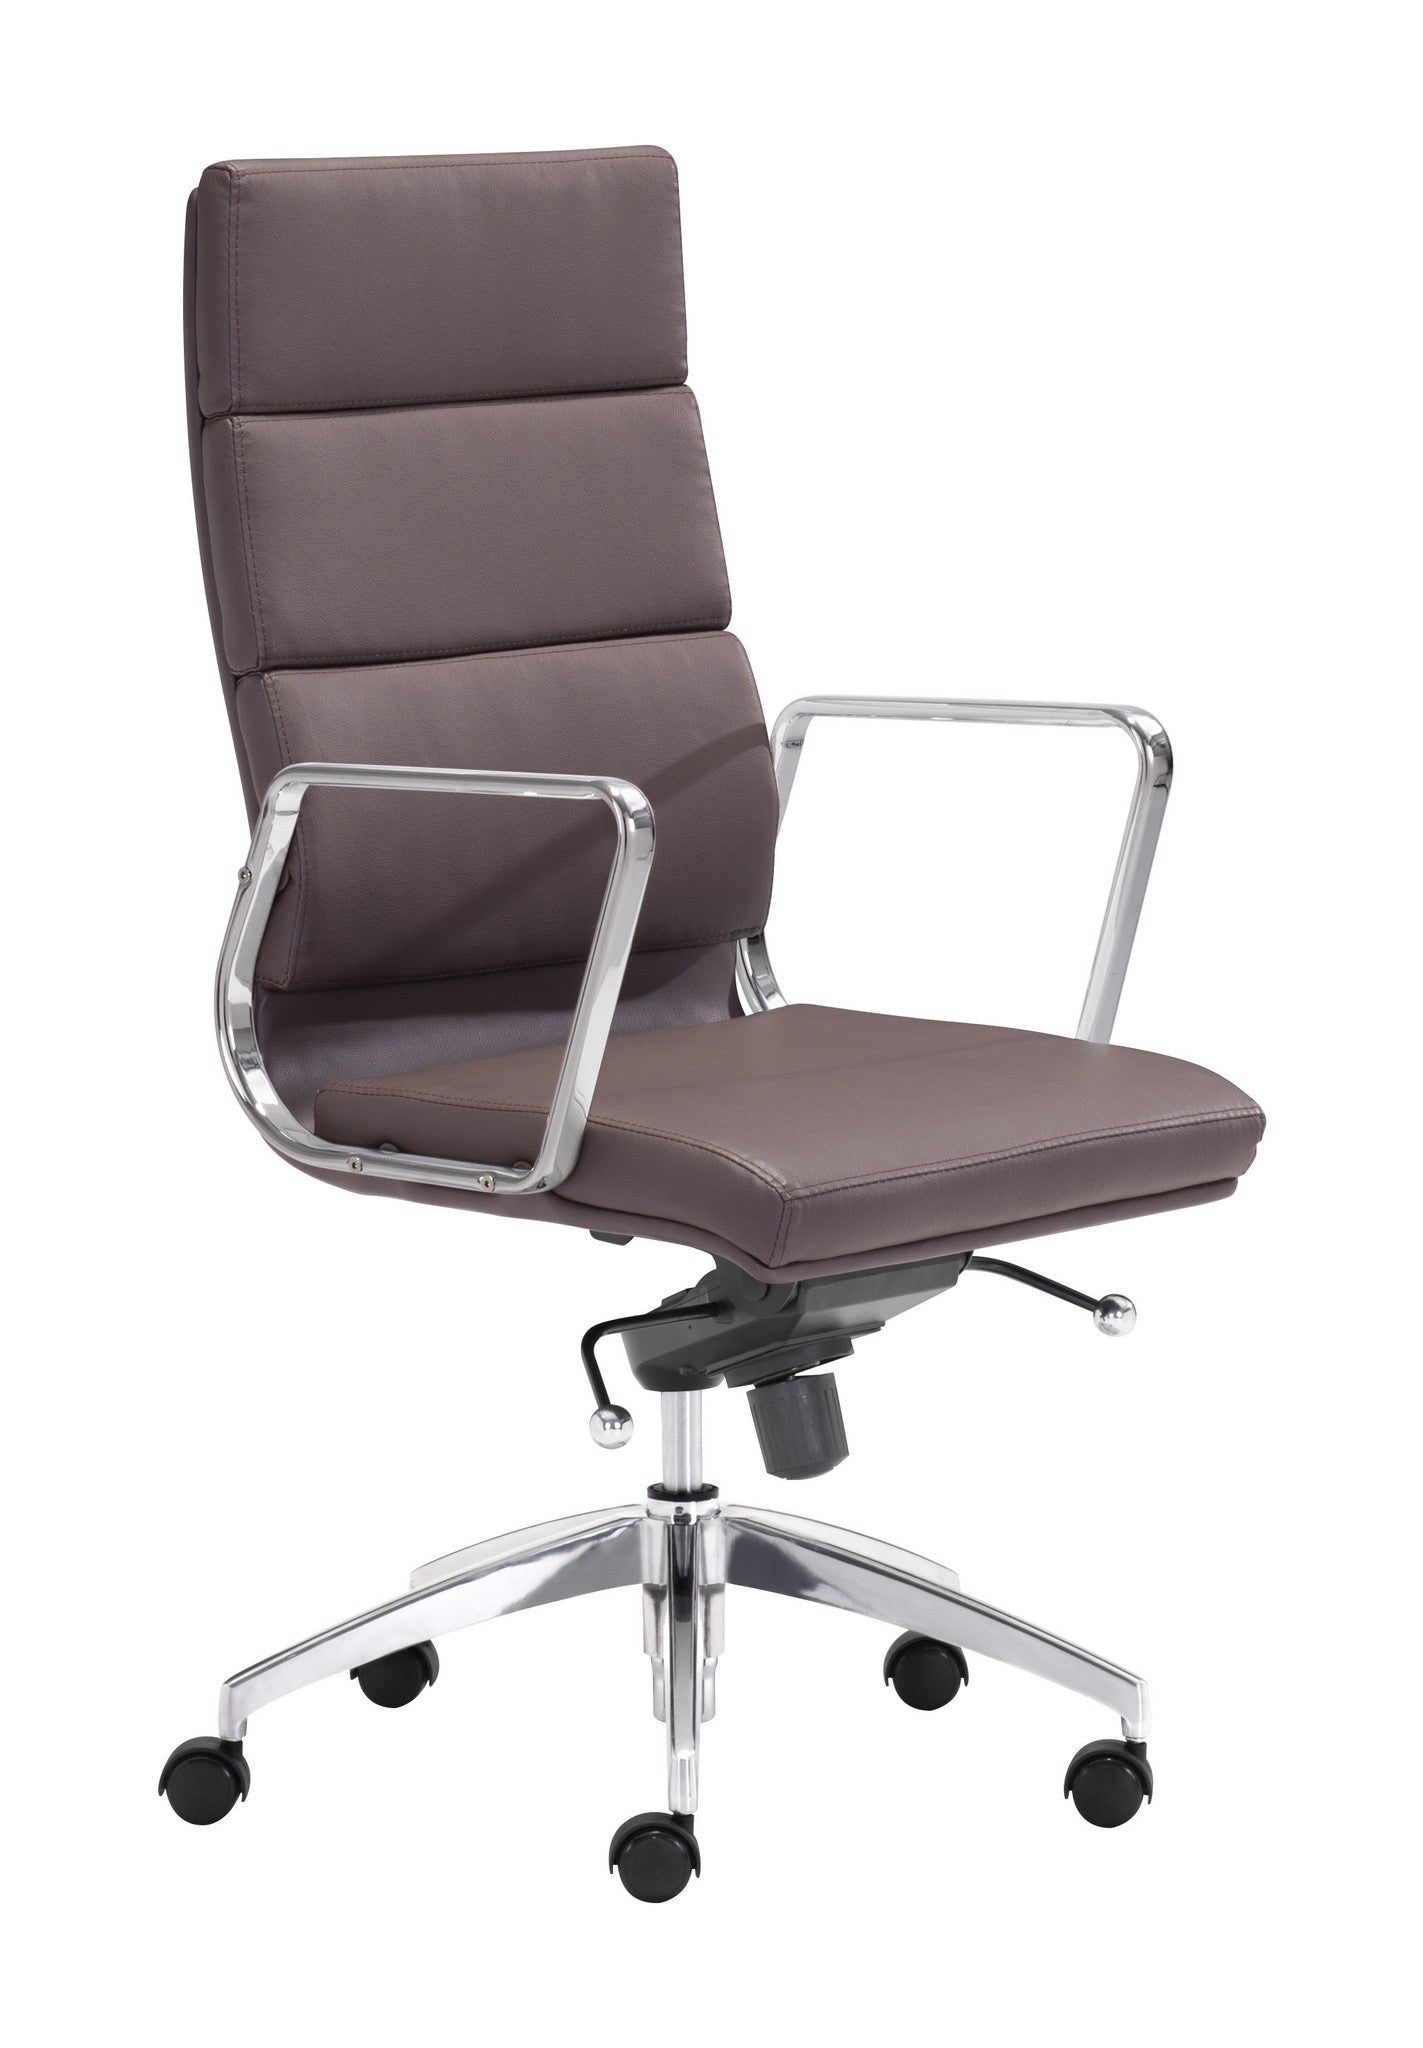 engineer high back office chair in espresso leatherette with chrome fr